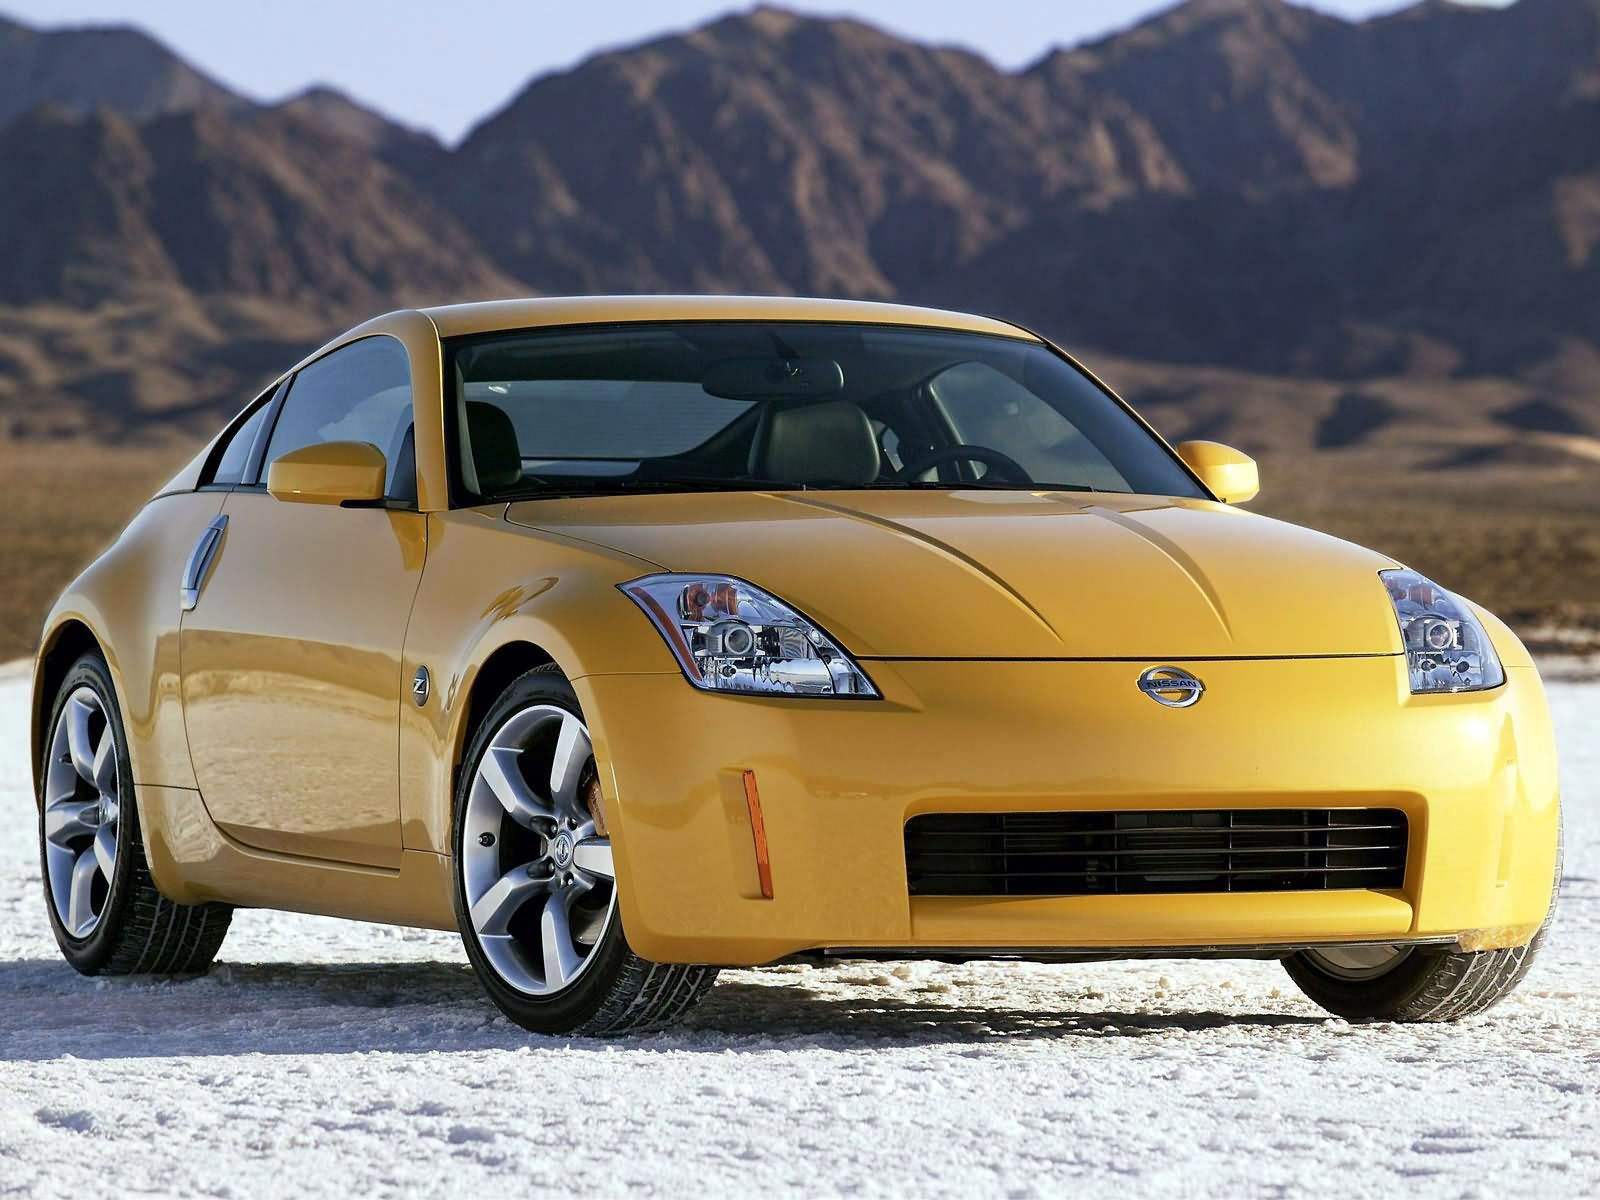 Used Nissan Z Enthusiast Coupe Sports Cars The Video Below - Get in sports car